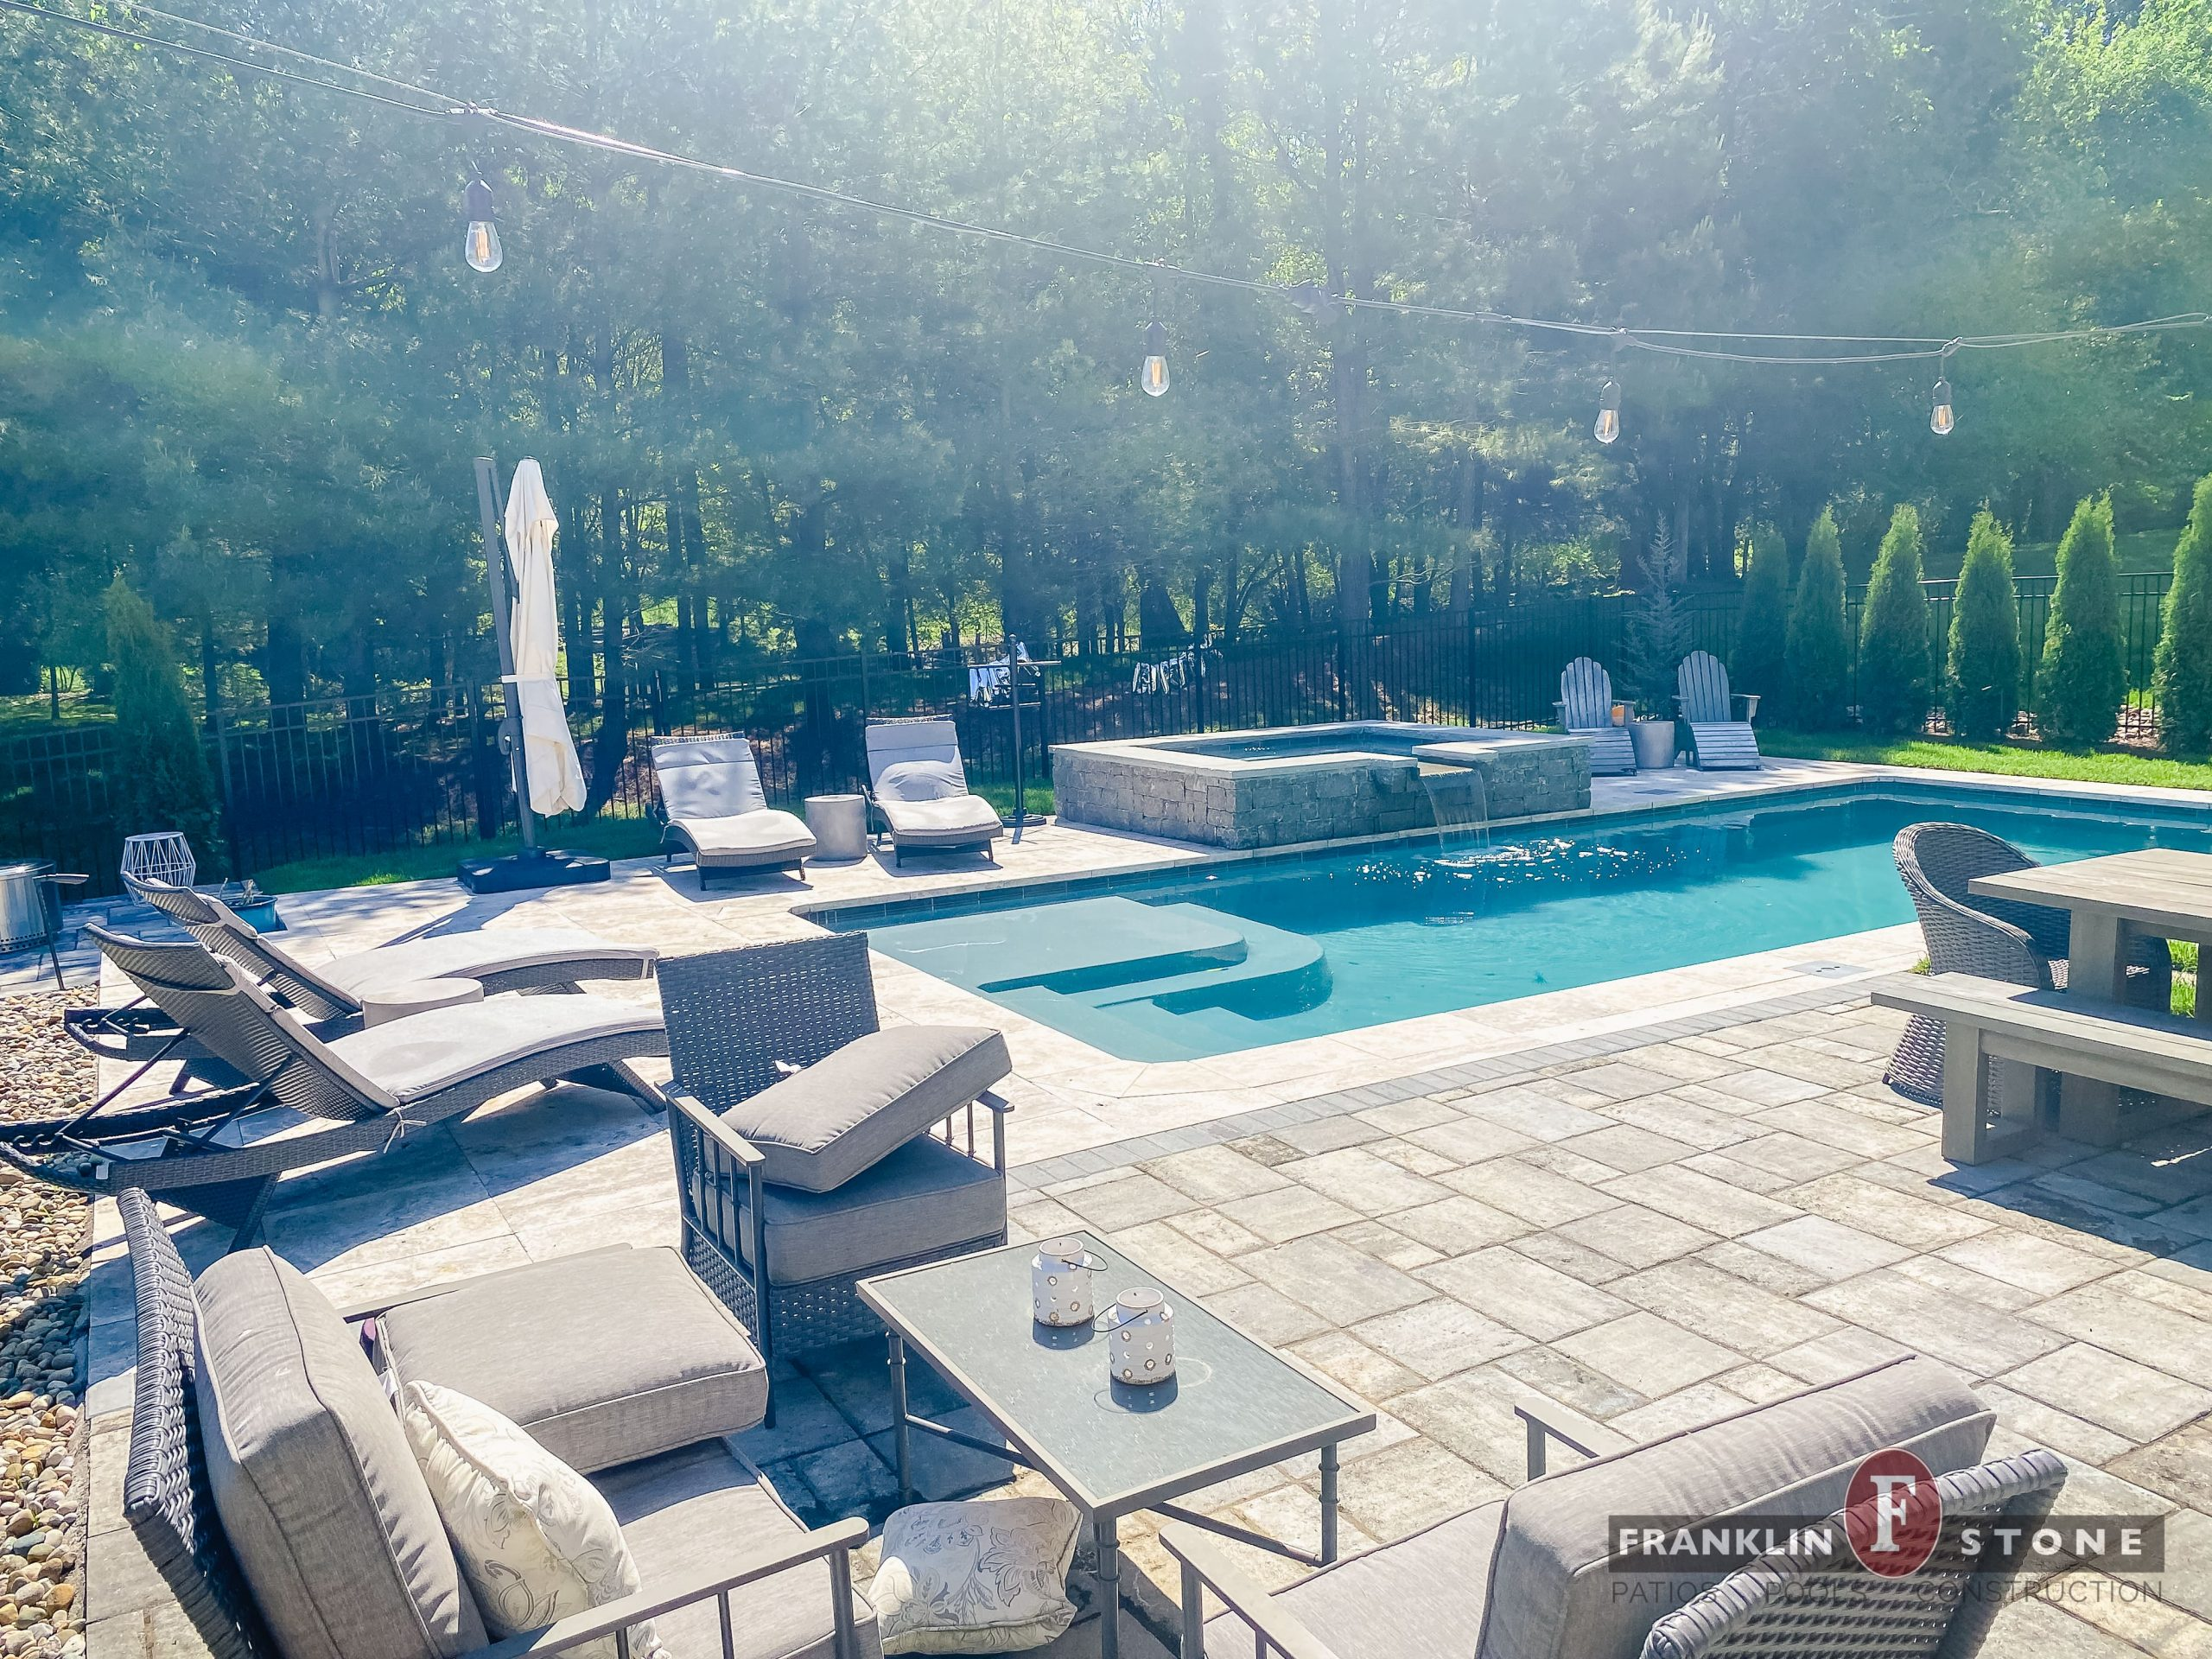 Franklin Stone pool and spa with running water features and surrounded by outdoor patio seating areas